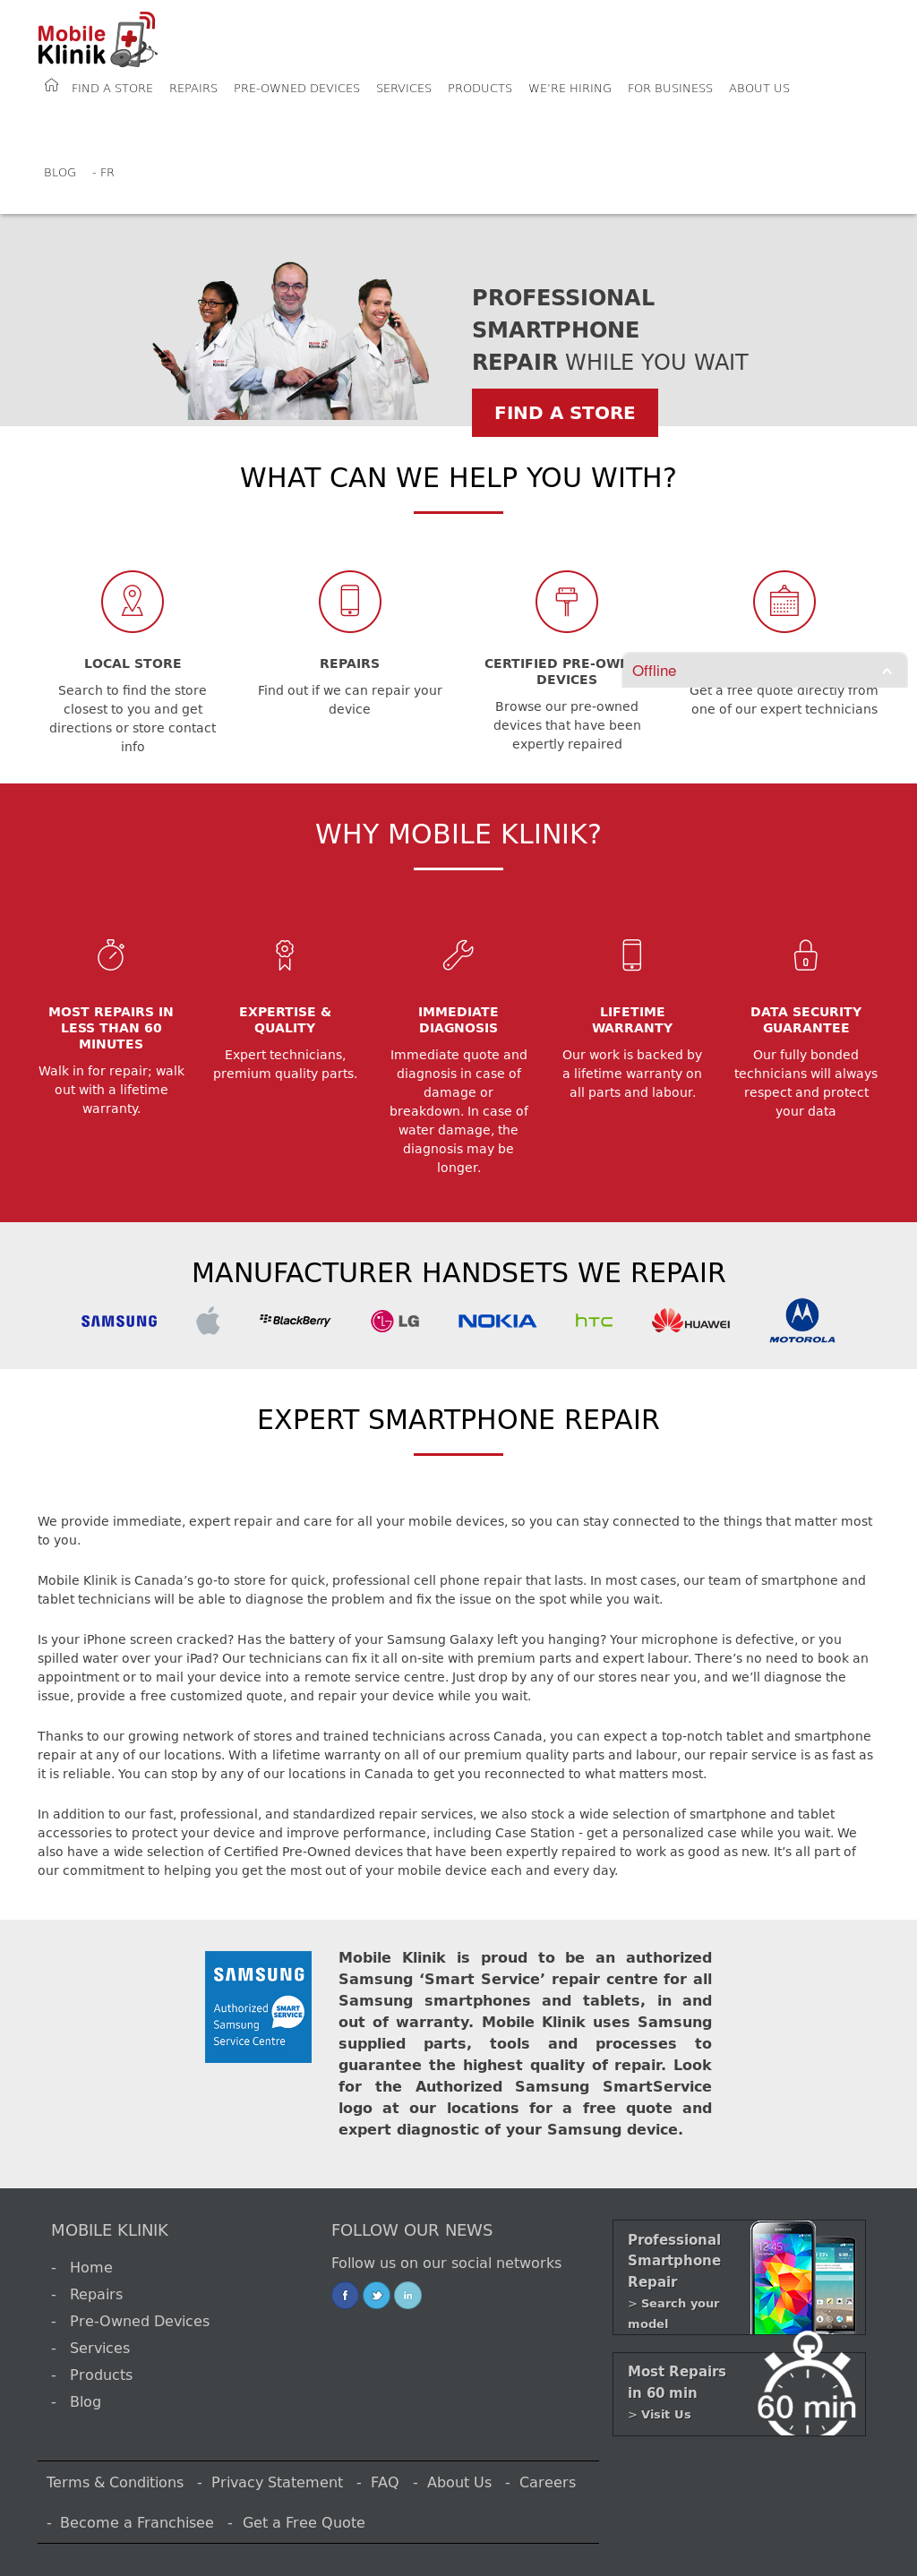 Mobile Klinik Competitors, Revenue and Employees - Owler Company Profile